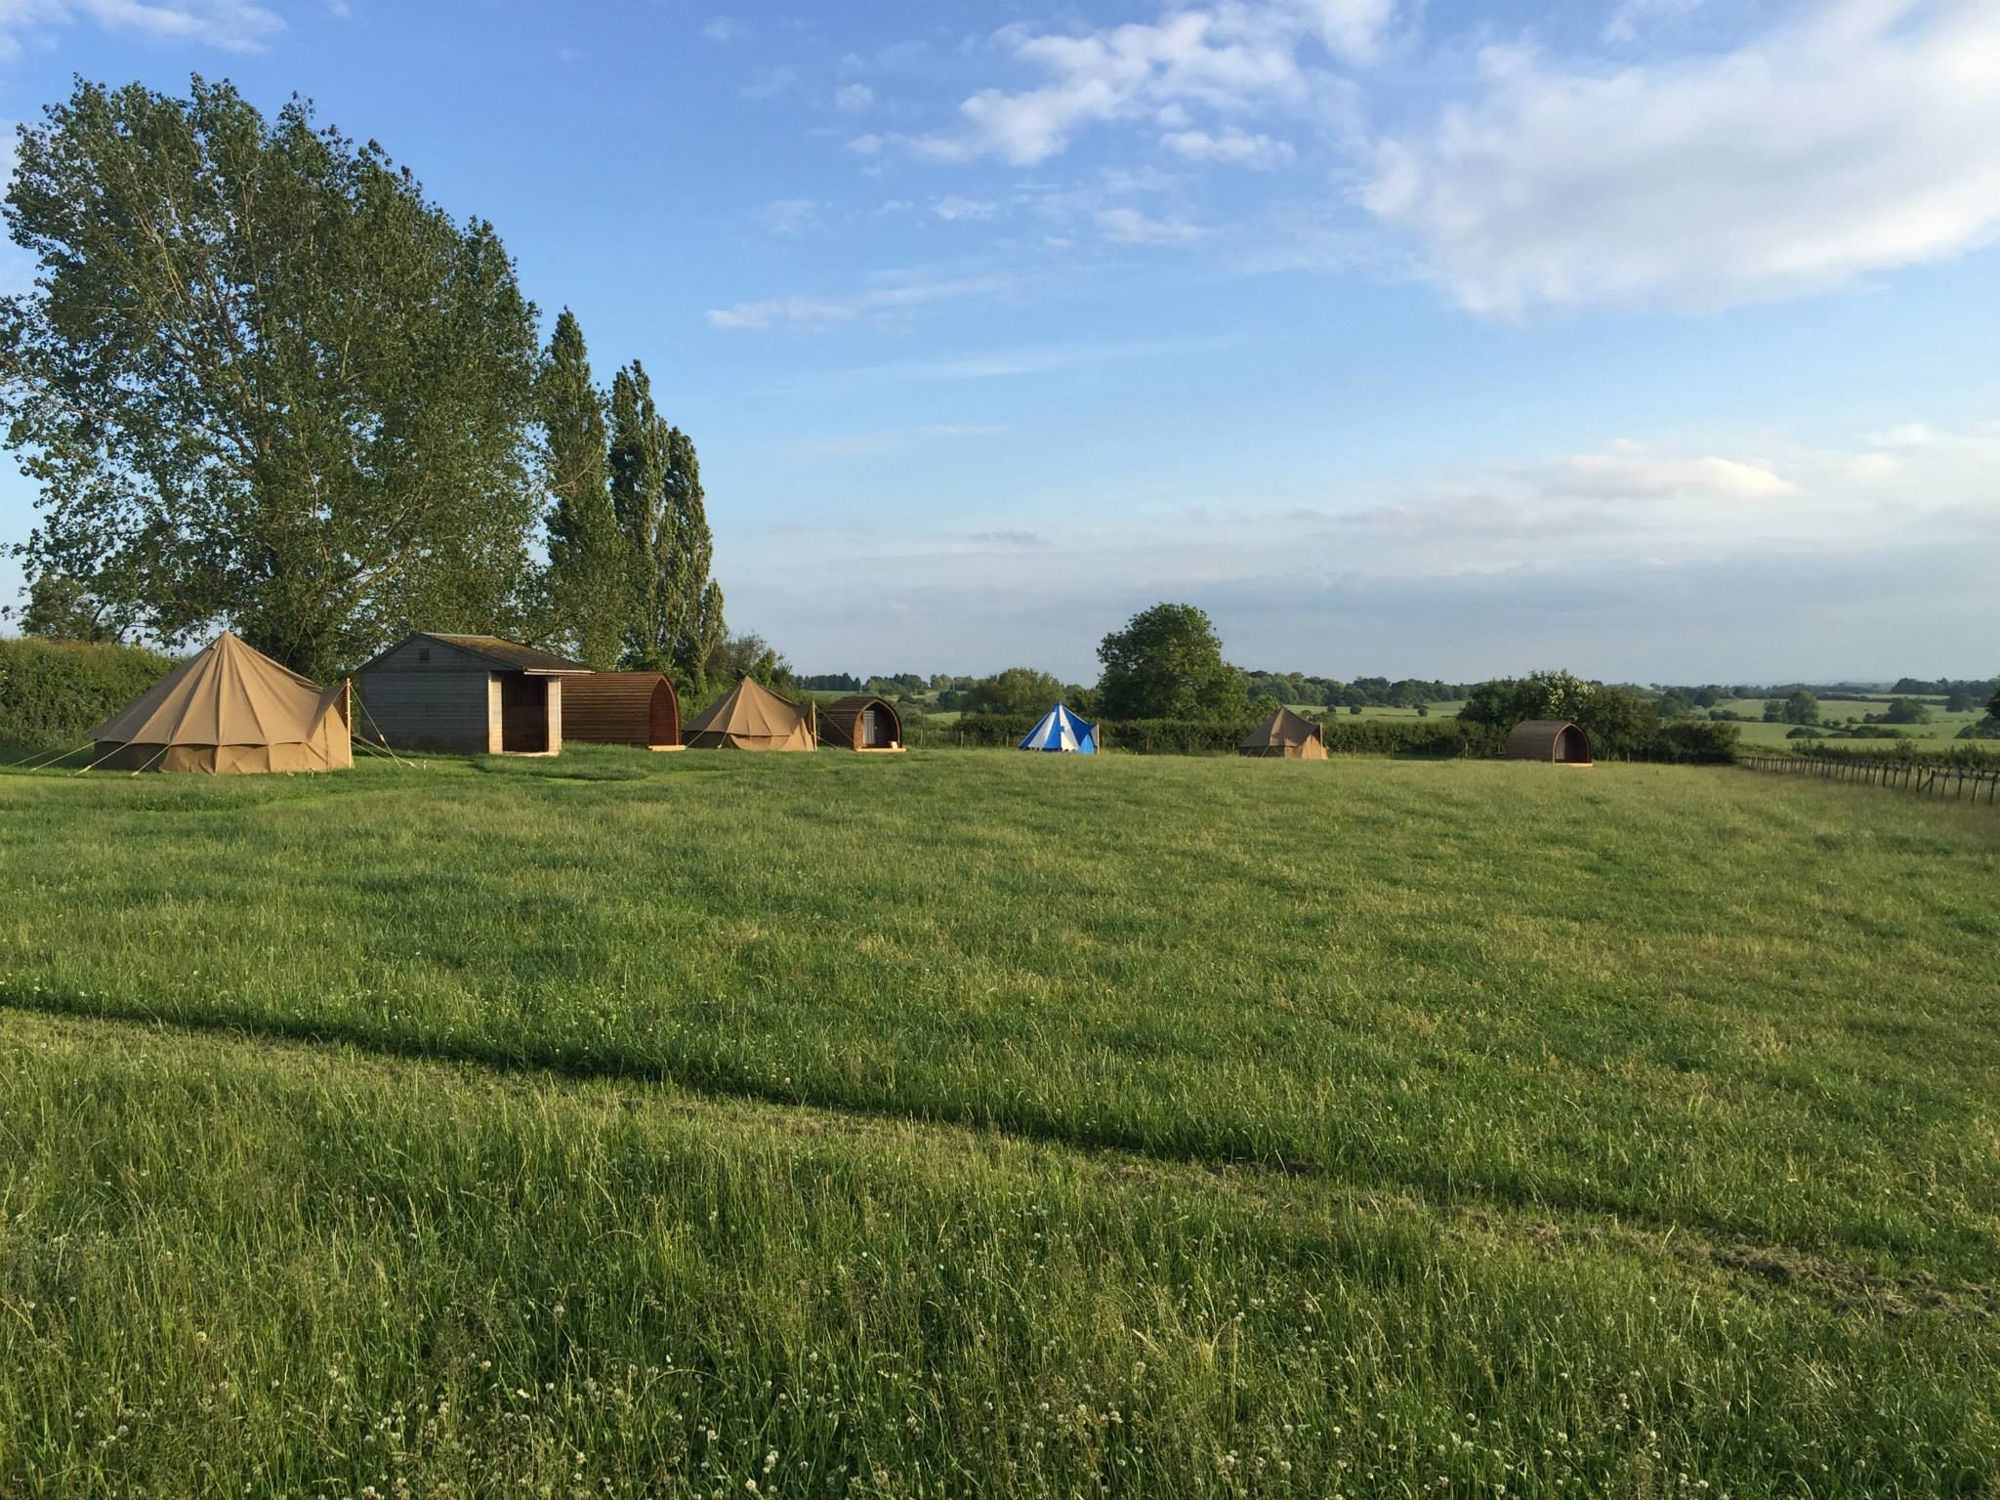 Hilltop Hideaway by name hilltop hideaway by nature – the best views in Warwickshire and top notch glamping accommodation.